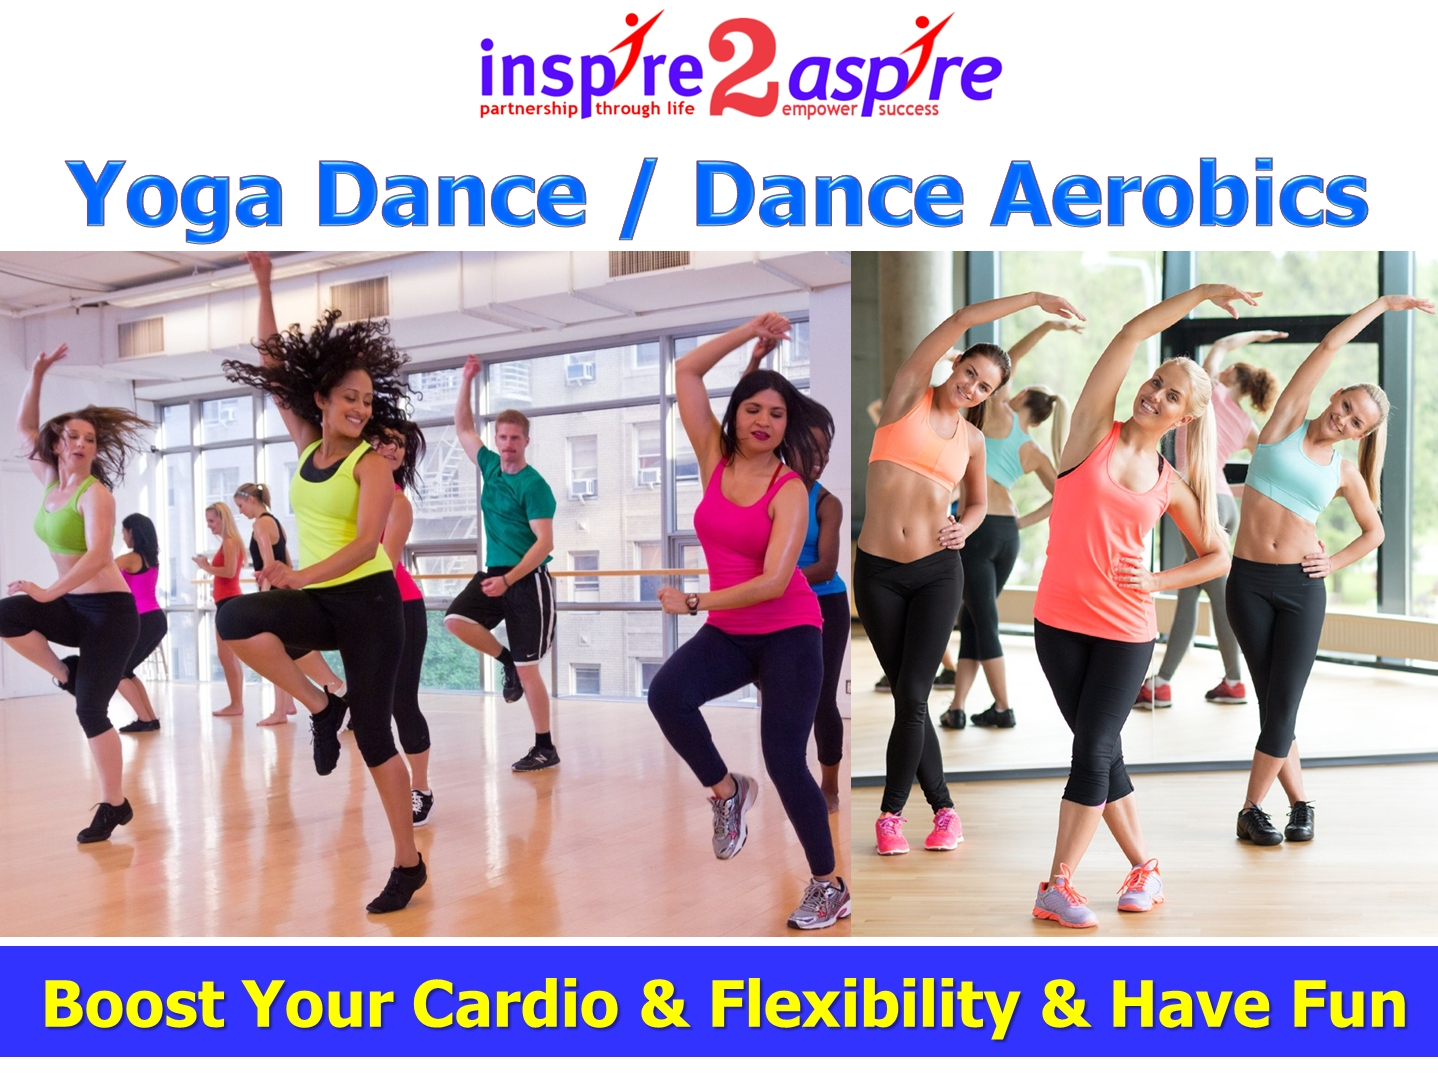 Yoga Dance / Dance Aerobics workshop